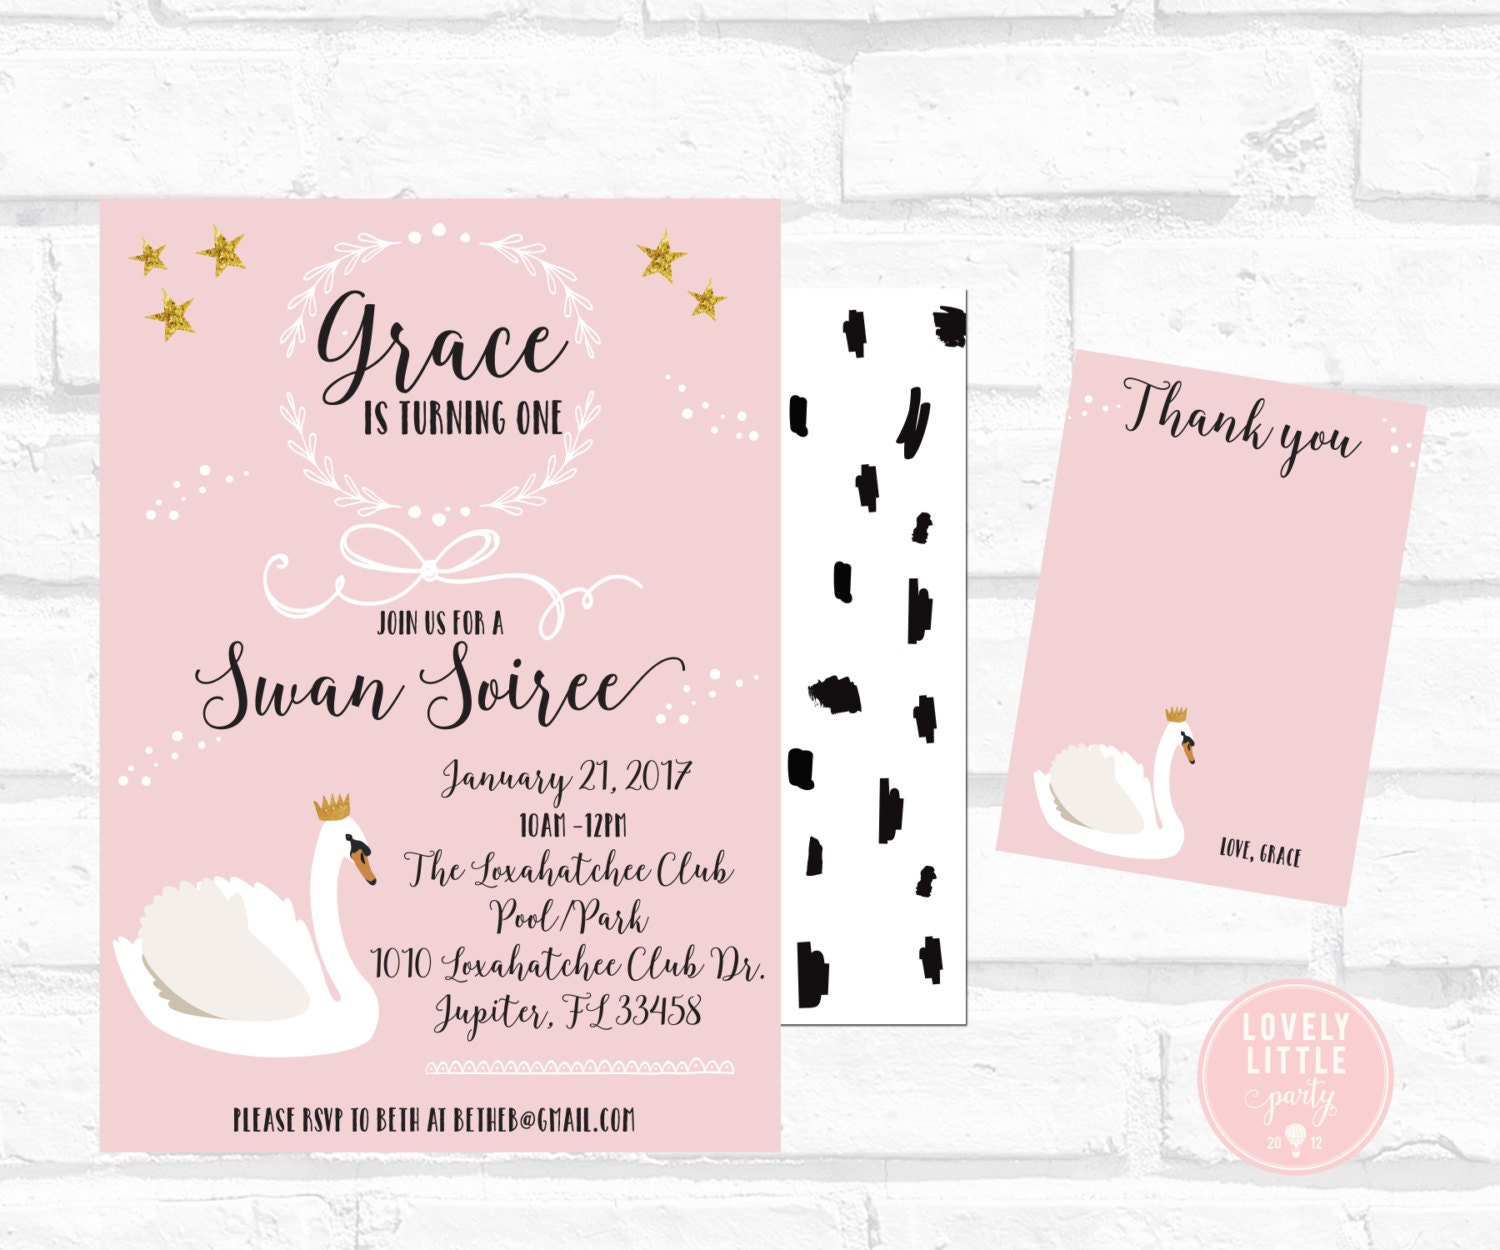 Swan Soiree Birthday Invitation Kit Invite AND Thank You Card included